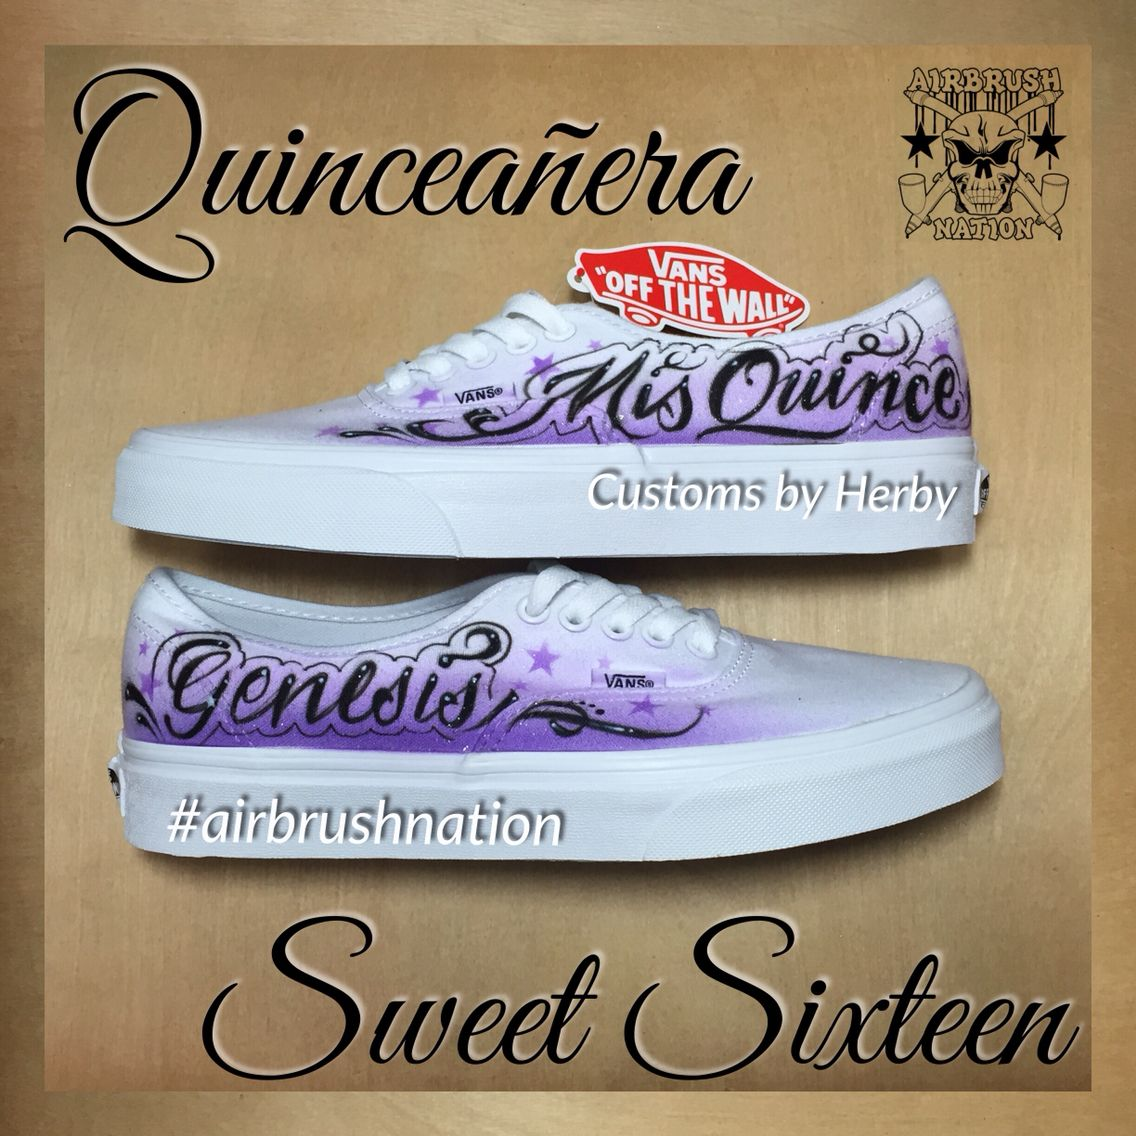 Quinceañera and Sweet Sixteen custom shoes. Customs by Herby   airbrushnation. Order yours today 323.456.5253 Quinceañera   vans customvans  sweetsixteen ... 337e1487a